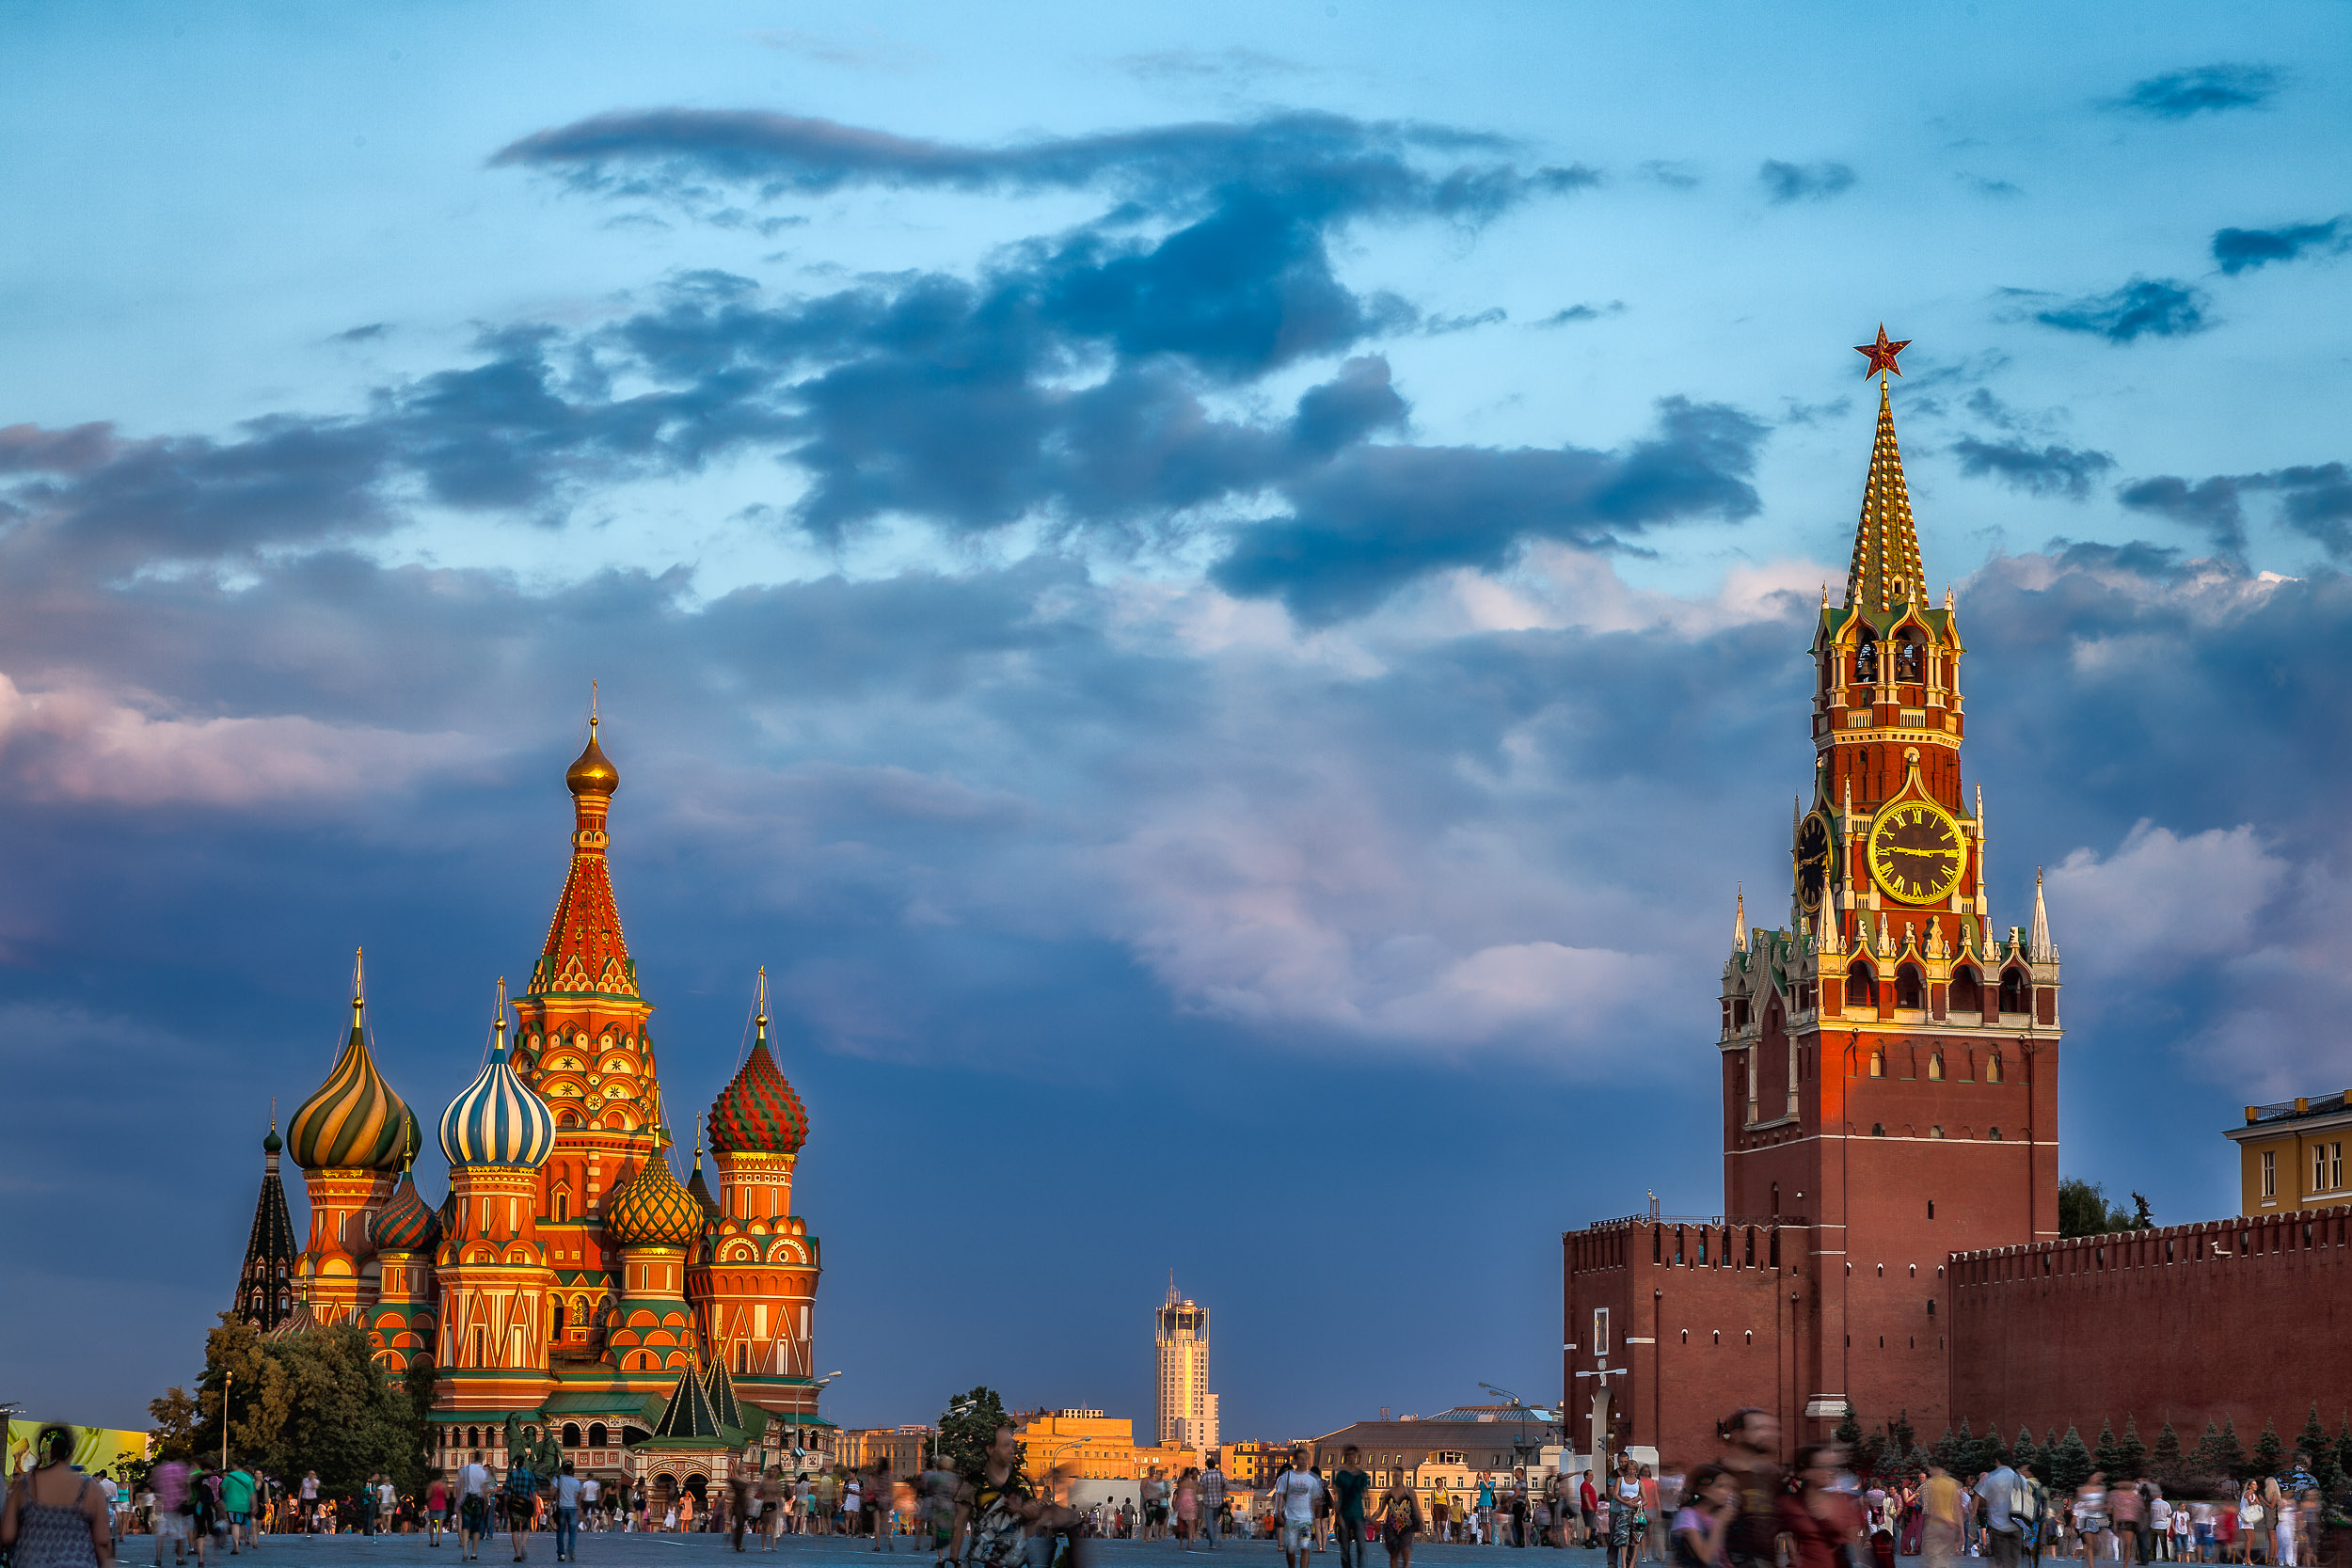 Warm    sunset light    illuminates the    Kremlin    and    St. Basil's Cathedral    in    Red Square, Moscow   .